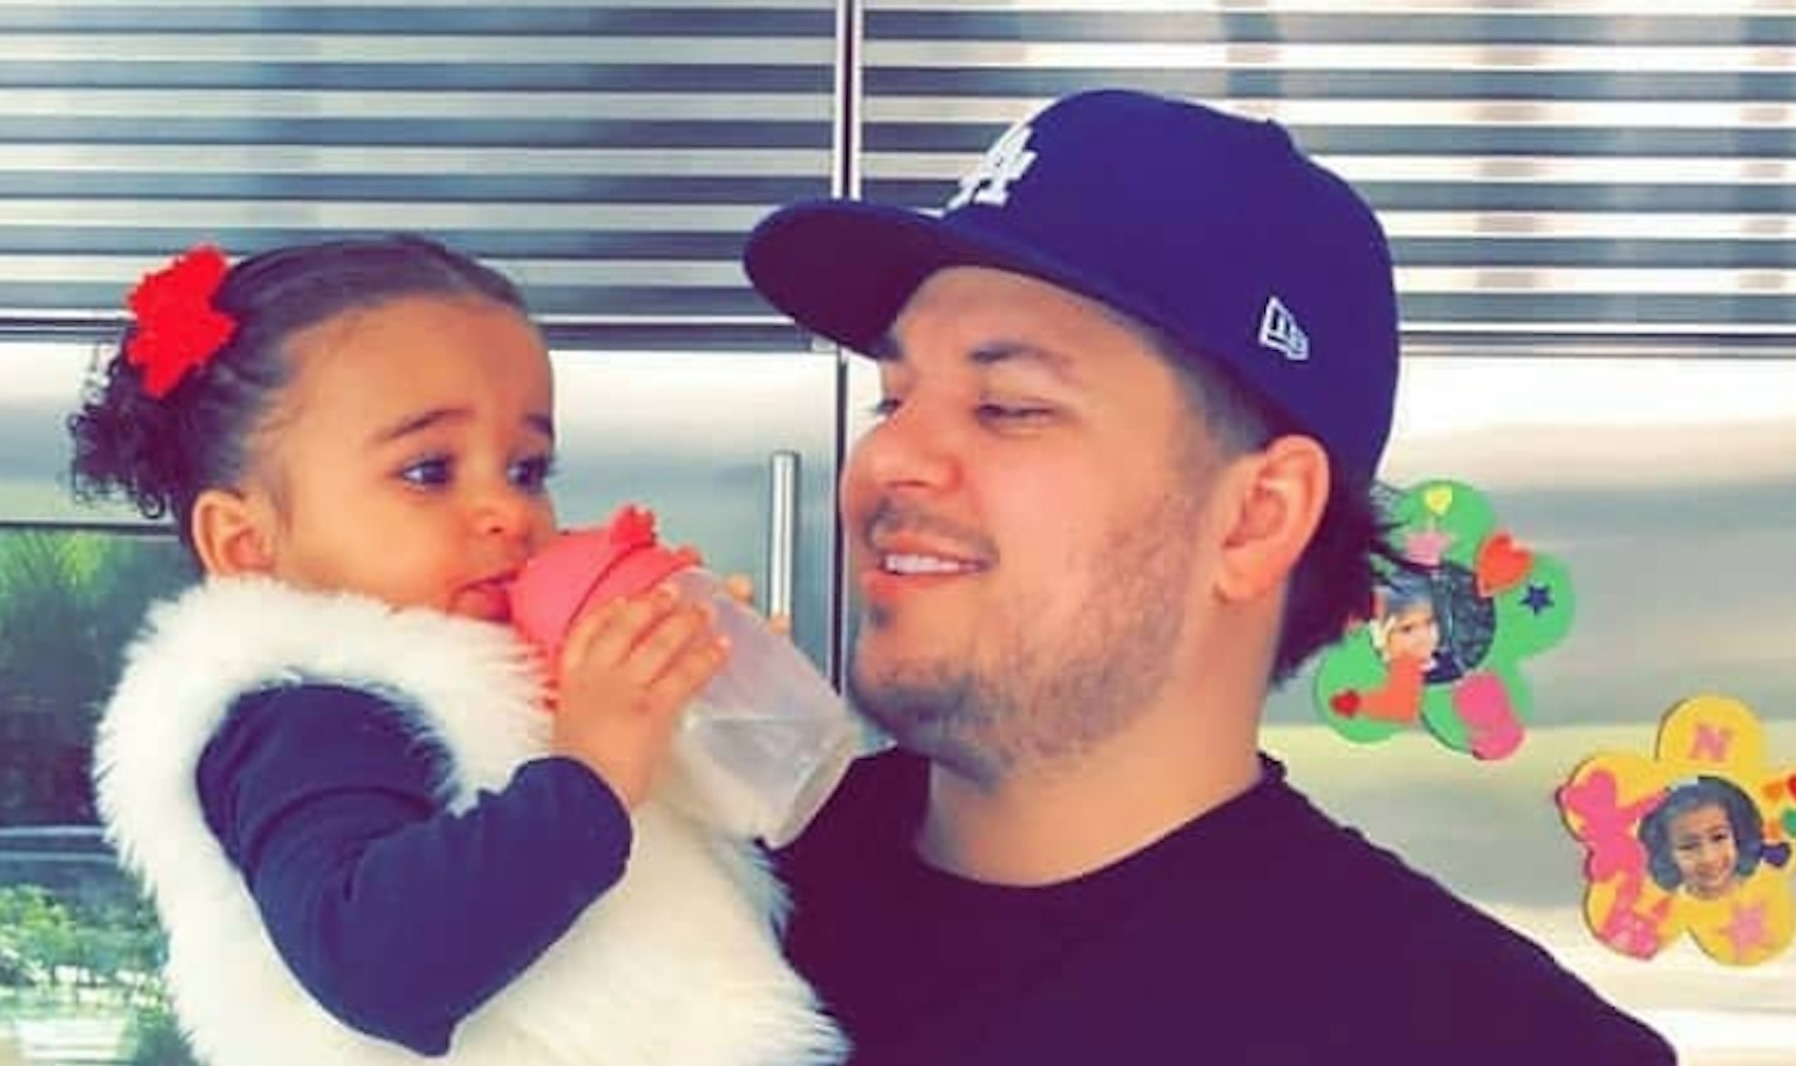 kuwk-dream-kardashian-sends-dad-rob-the-sweetest-good-night-video-message-check-it-out